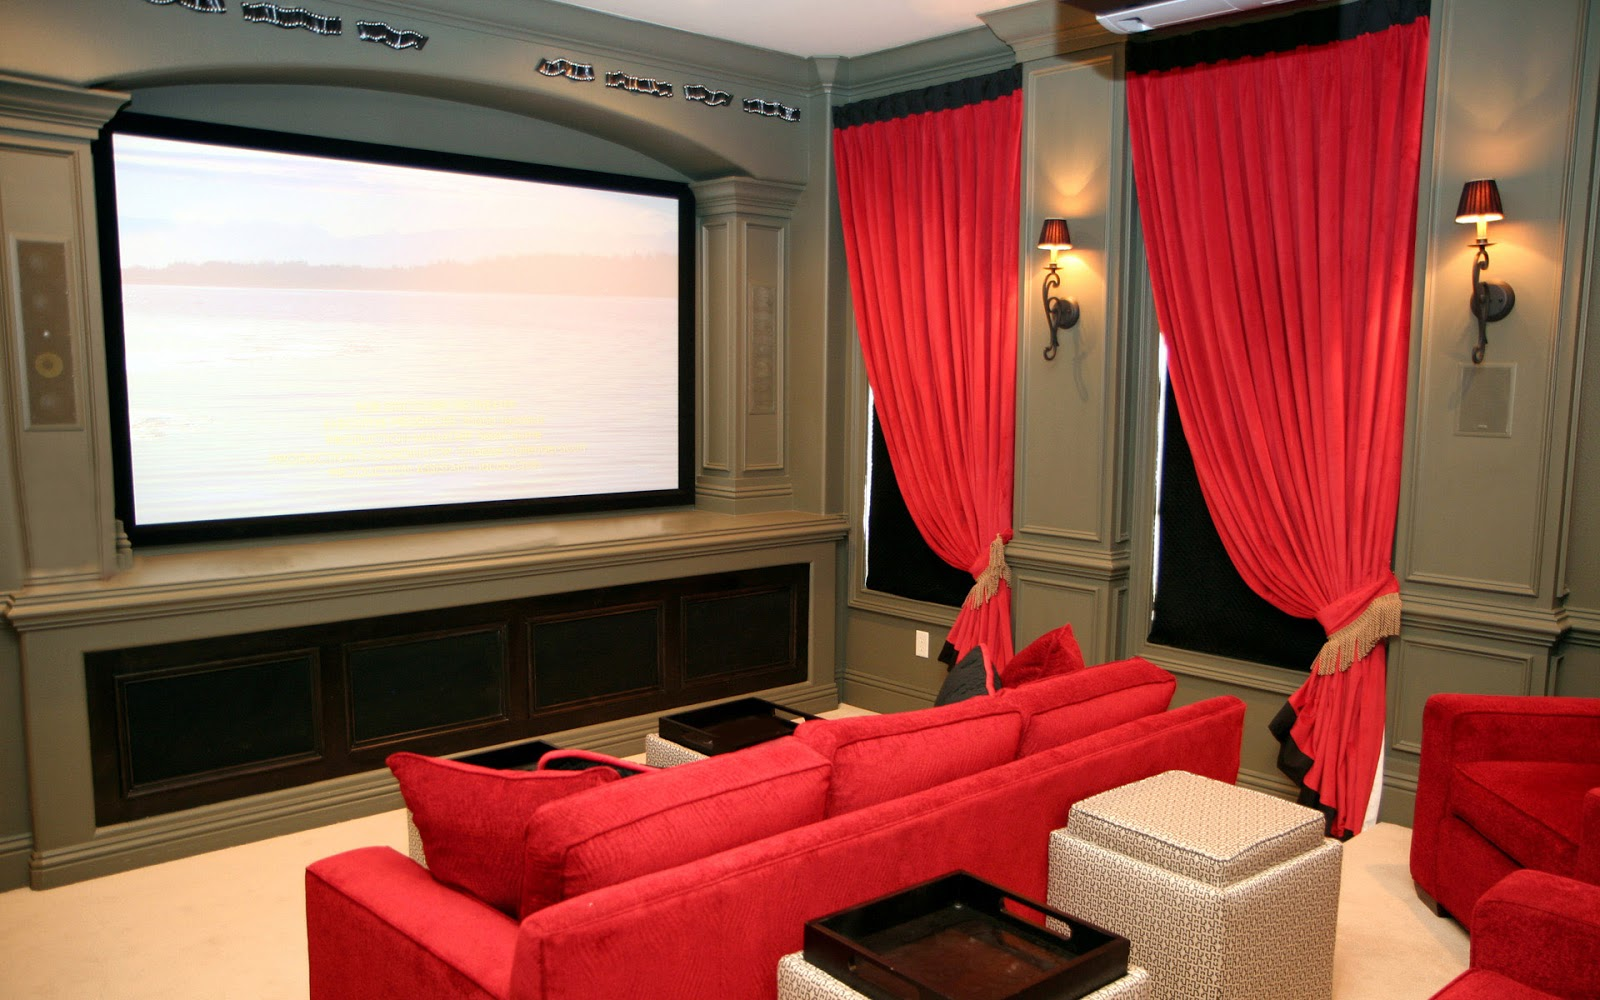 Private Home Theater With Bright Red Sofas Red Window Curtains Big Screen A  Pair Of Lighting